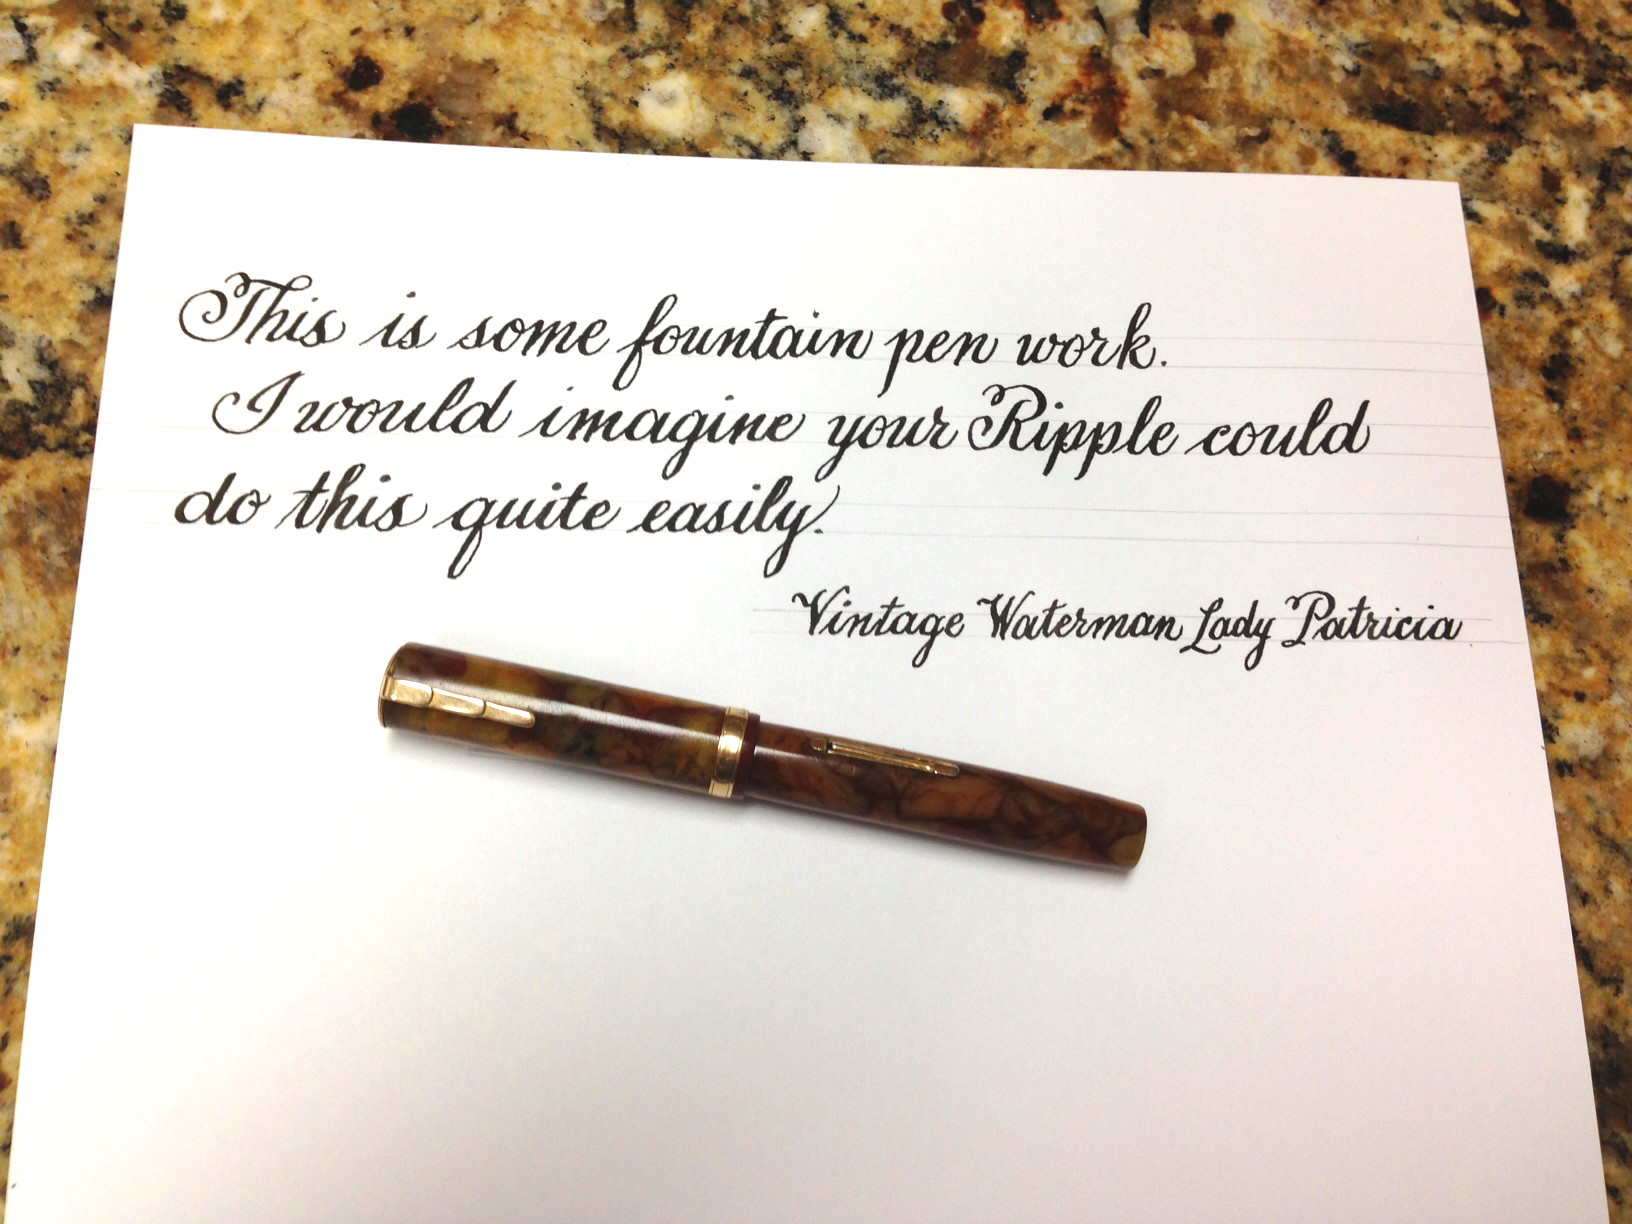 Famous waterman quotes